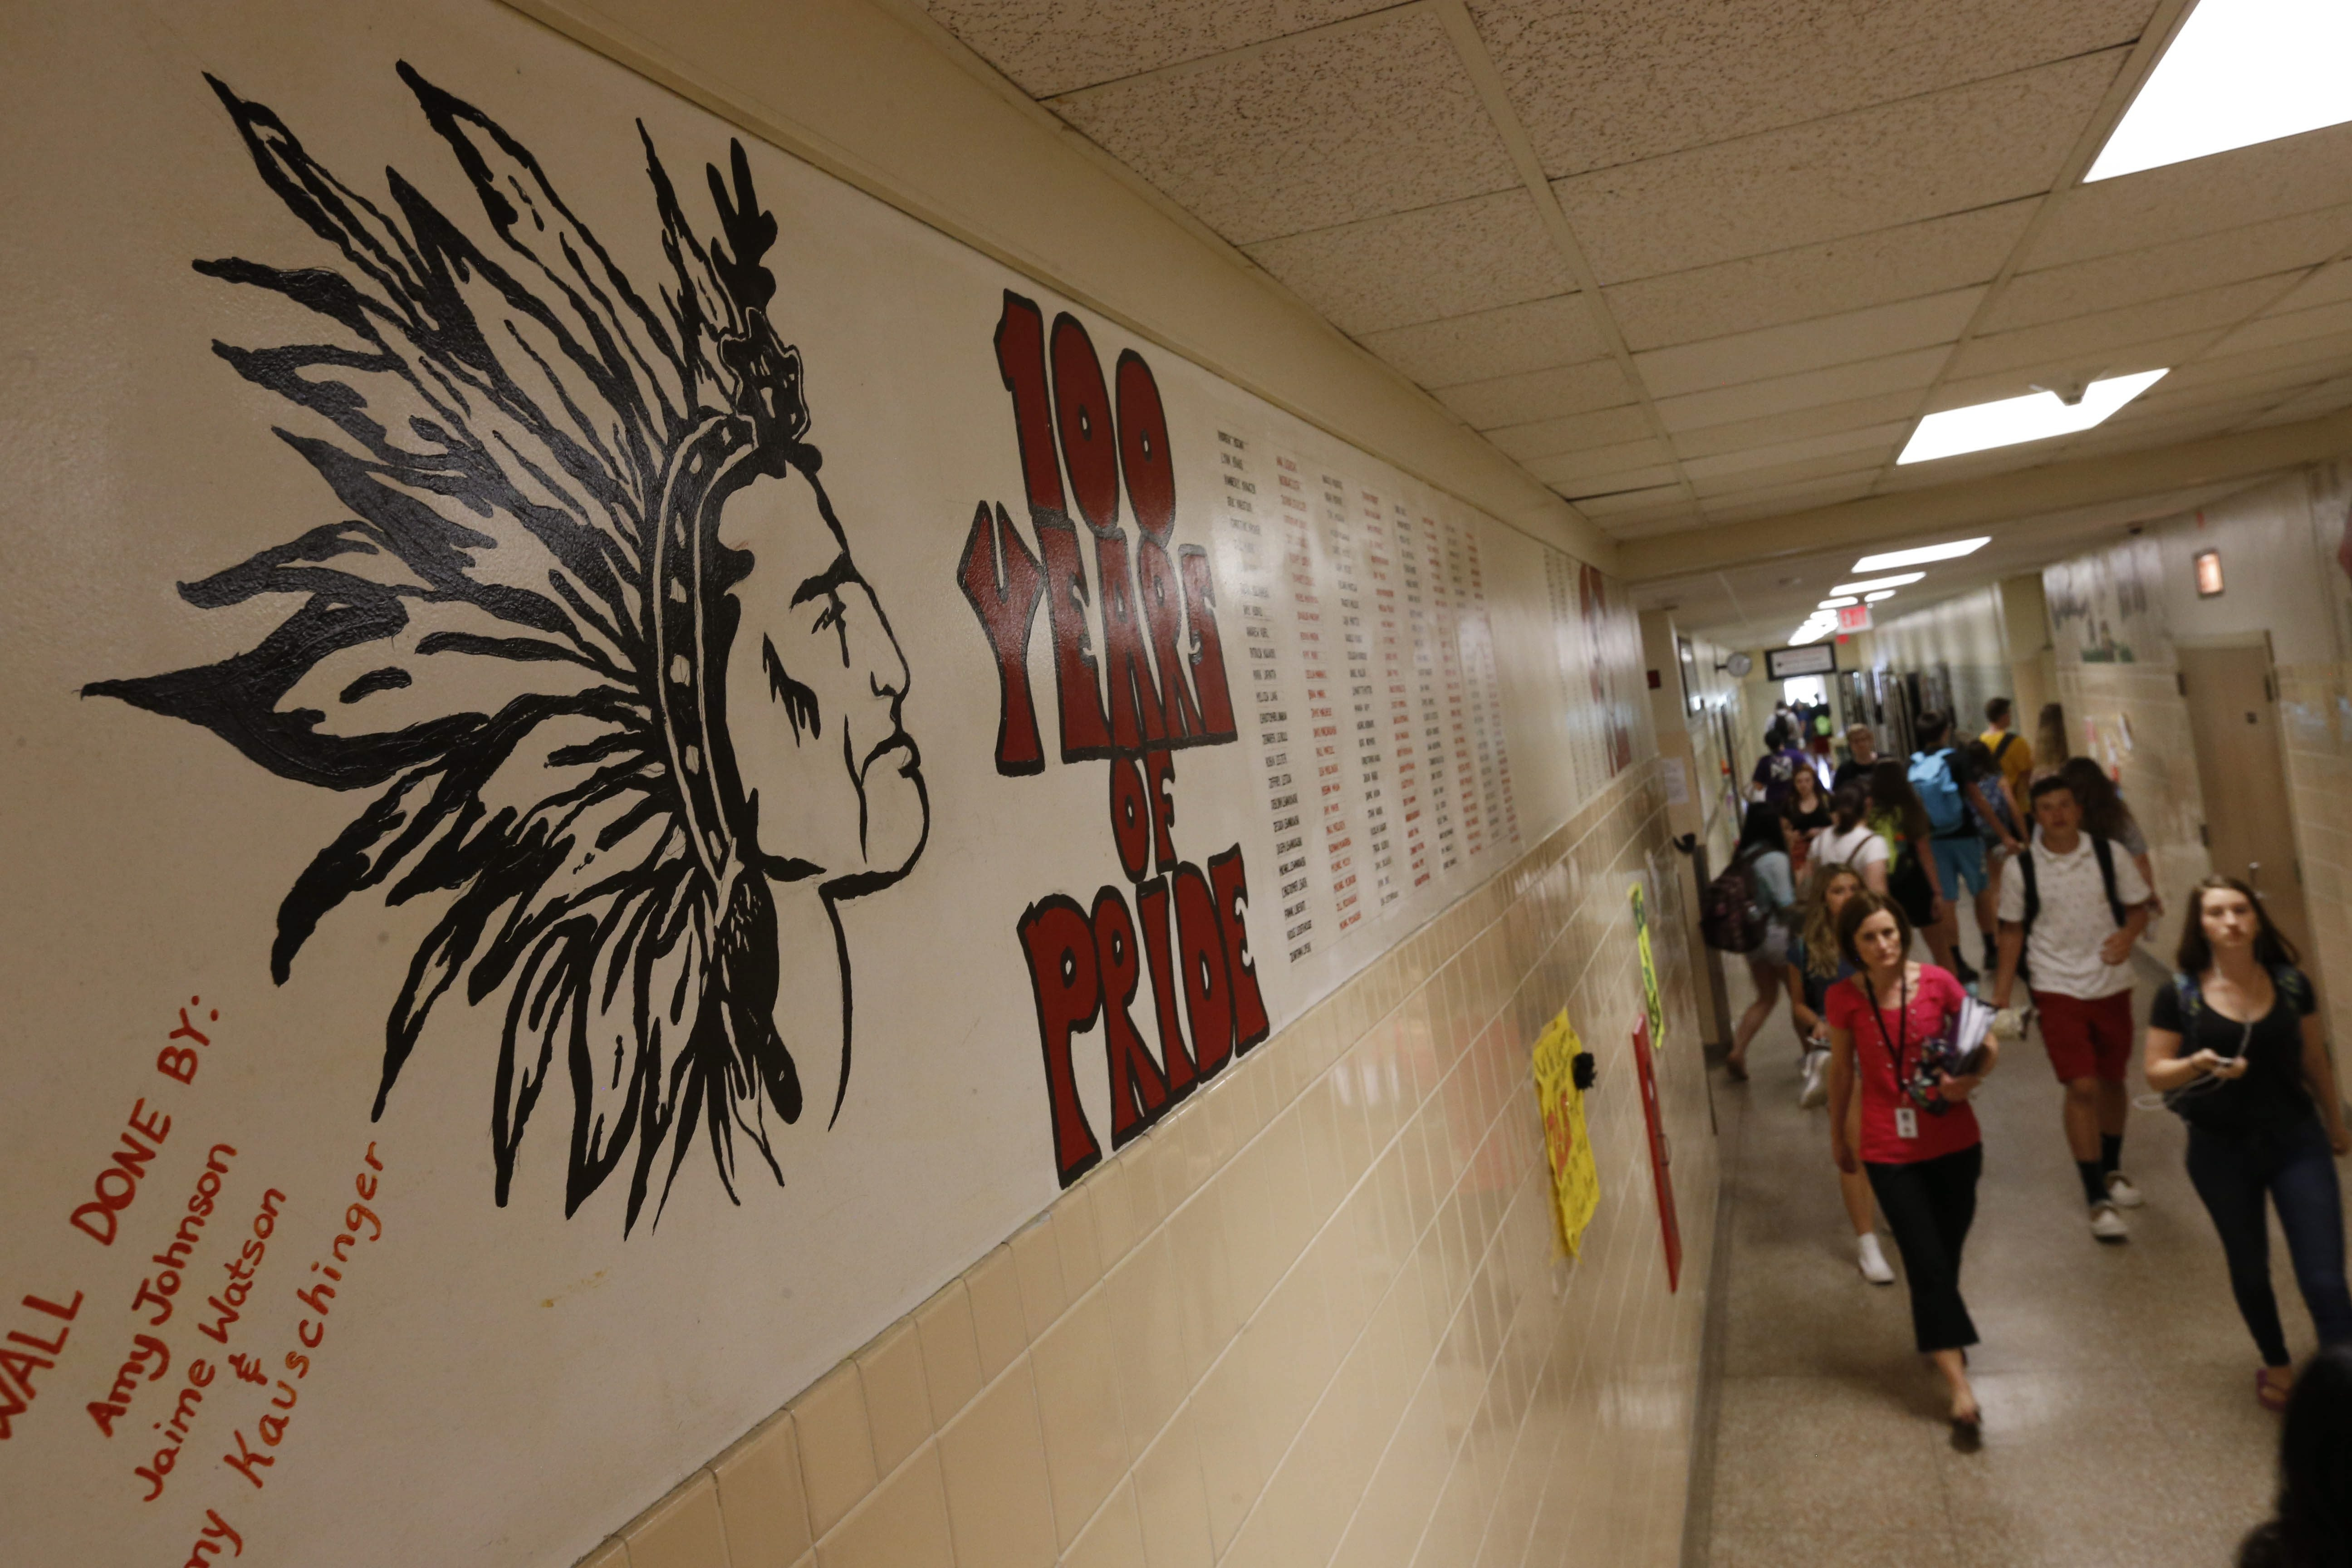 Murals are painted in the Lancaster High School hallway by each year's senior class in a tradition that dates back to 1991. The Redskins mascot and nickname was retired by the School Board in March, prompting a backlash that some say may influence voter turnout.